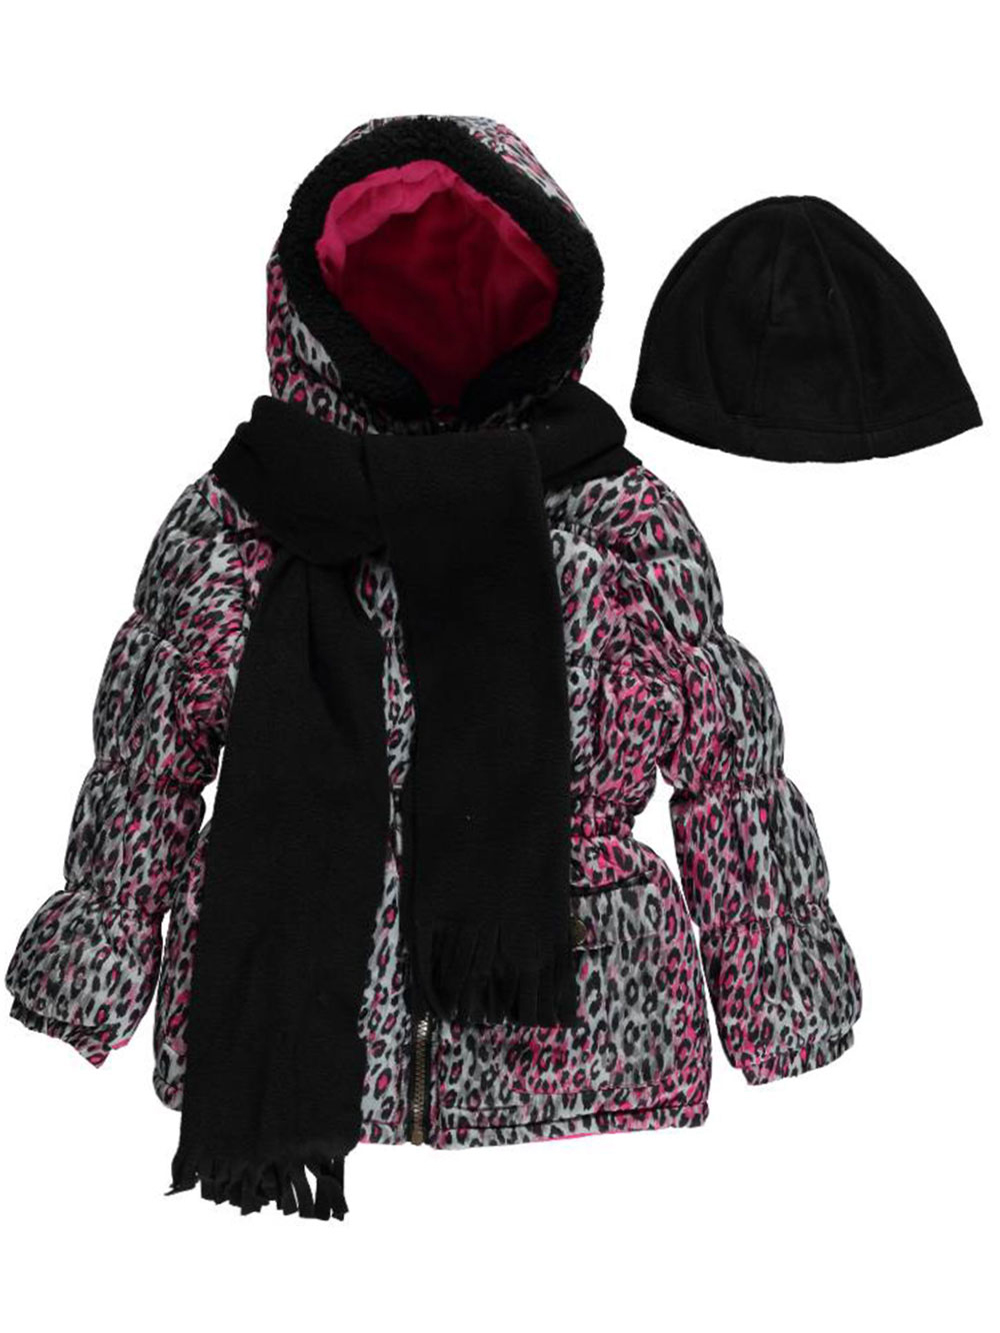 Image of Pink Platinum Little Girls Toddler Leopard Splash Insulated Parka with Accessories Sizes 2T  4T